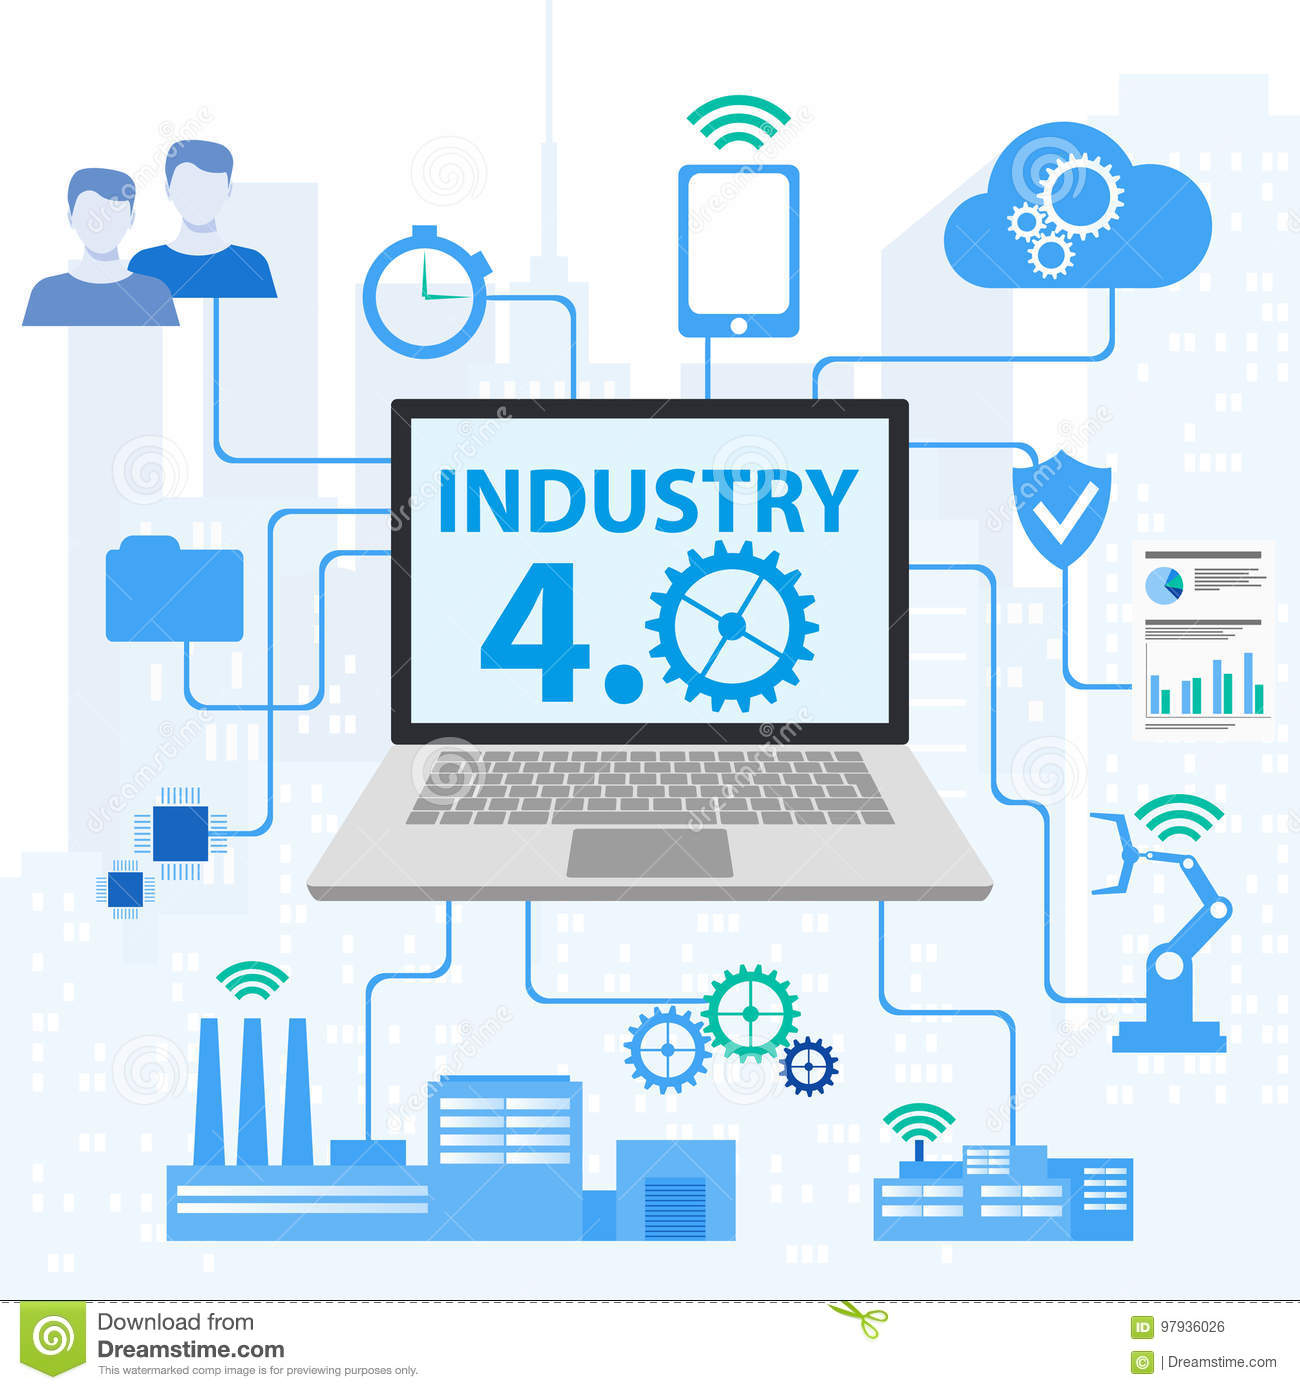 Industrial 4. 0 Cyber Physical Systems concept , Infographic Icons of industry 4. 0